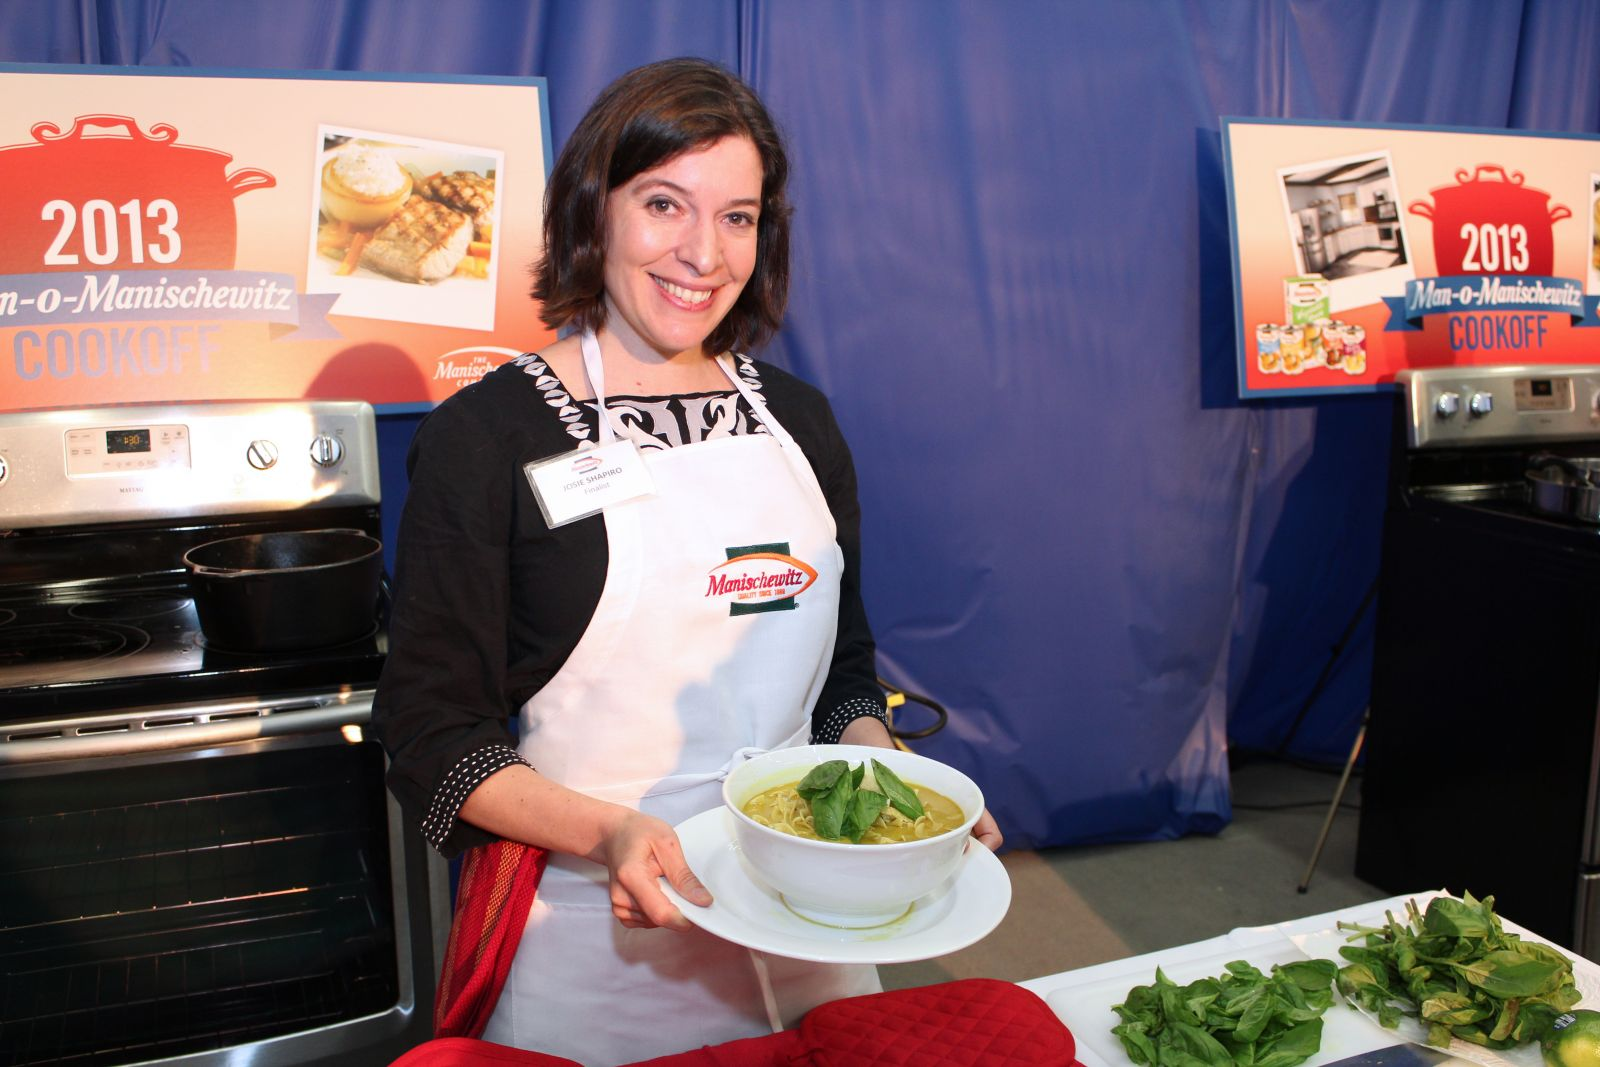 Josie Shapiros Faux-Pho Wins Manischewitz Cook-Off